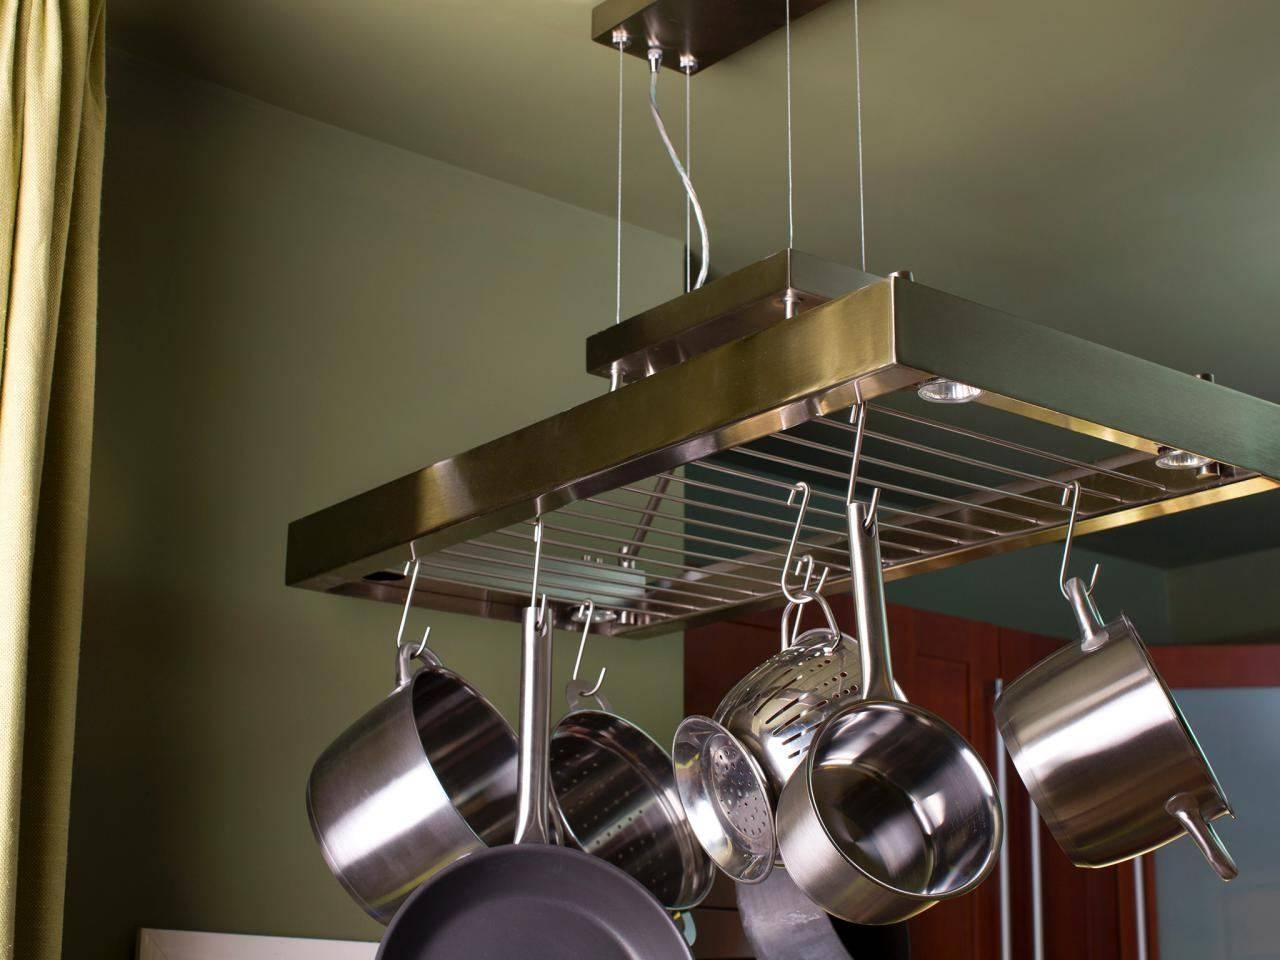 Pot Rack Ideas Stainless Steel Sink Double Built In Oven Brown intended for Kitchen Pendant Lights With Pot Rack (Image 15 of 15)